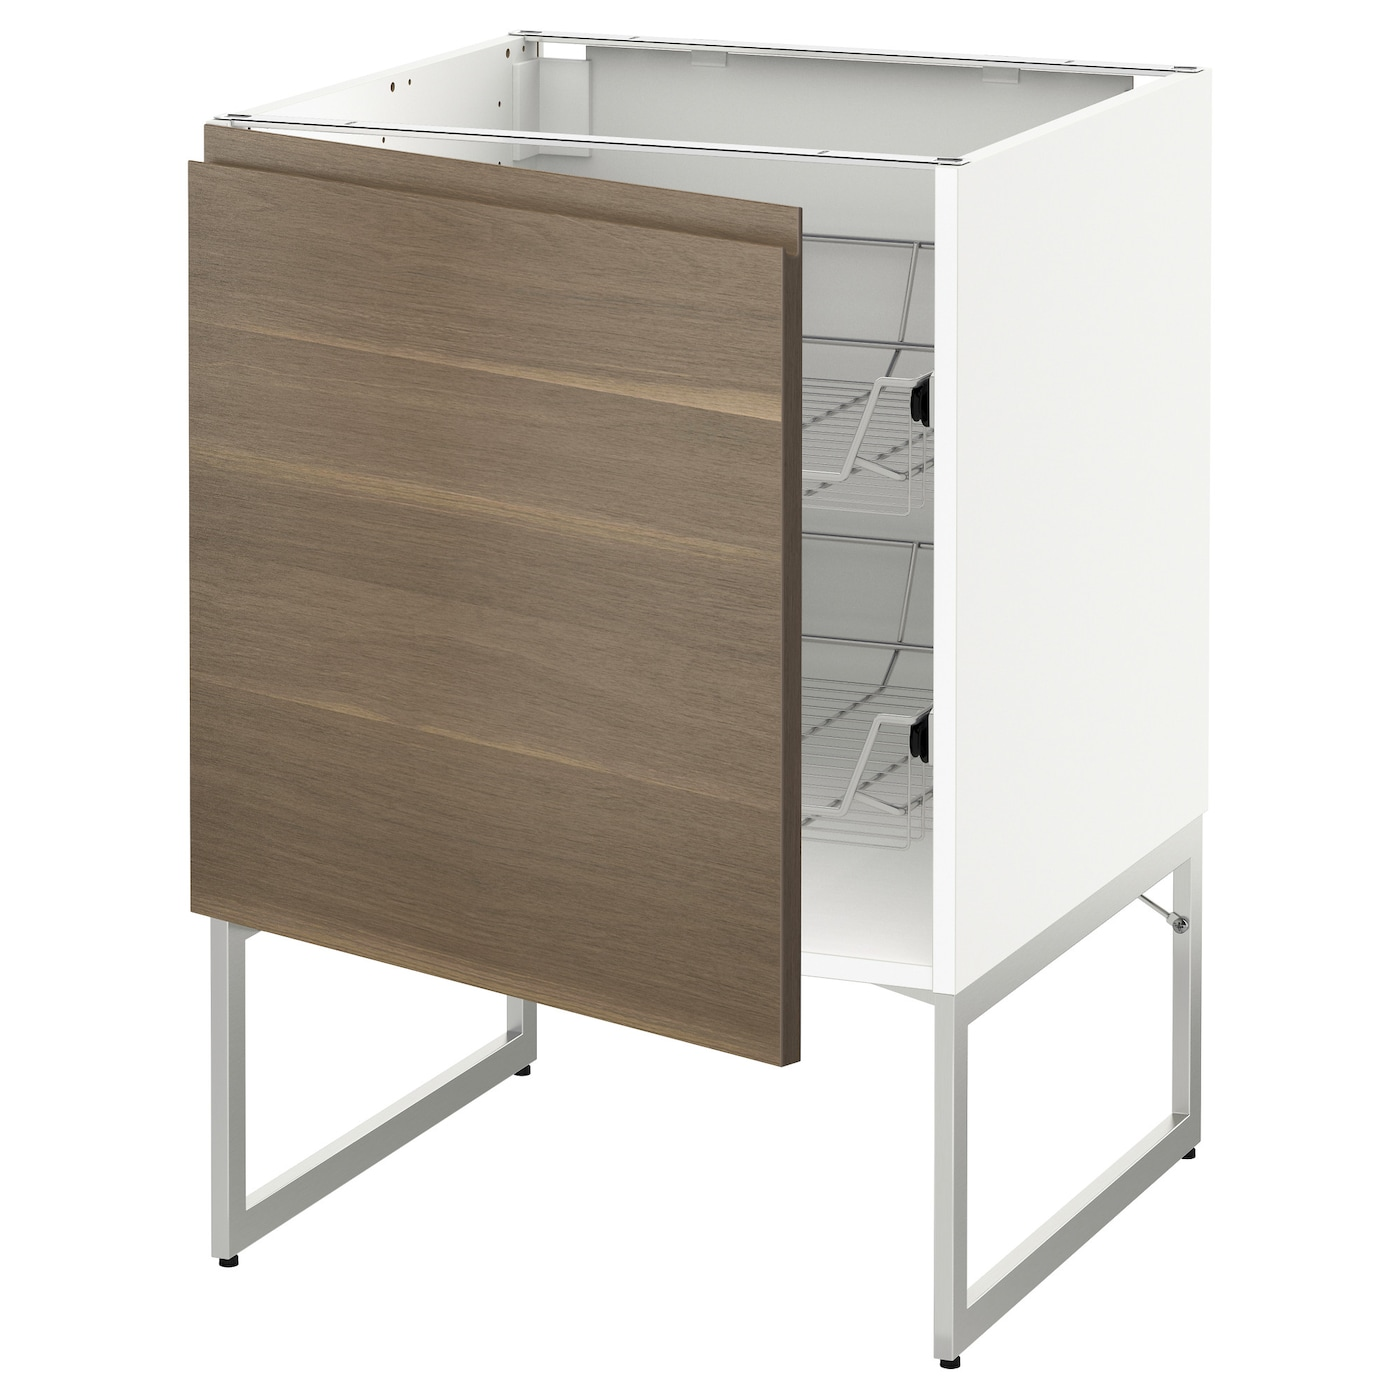 Metod base cabinet with wire baskets white voxtorp walnut for Baskets for kitchen cabinets